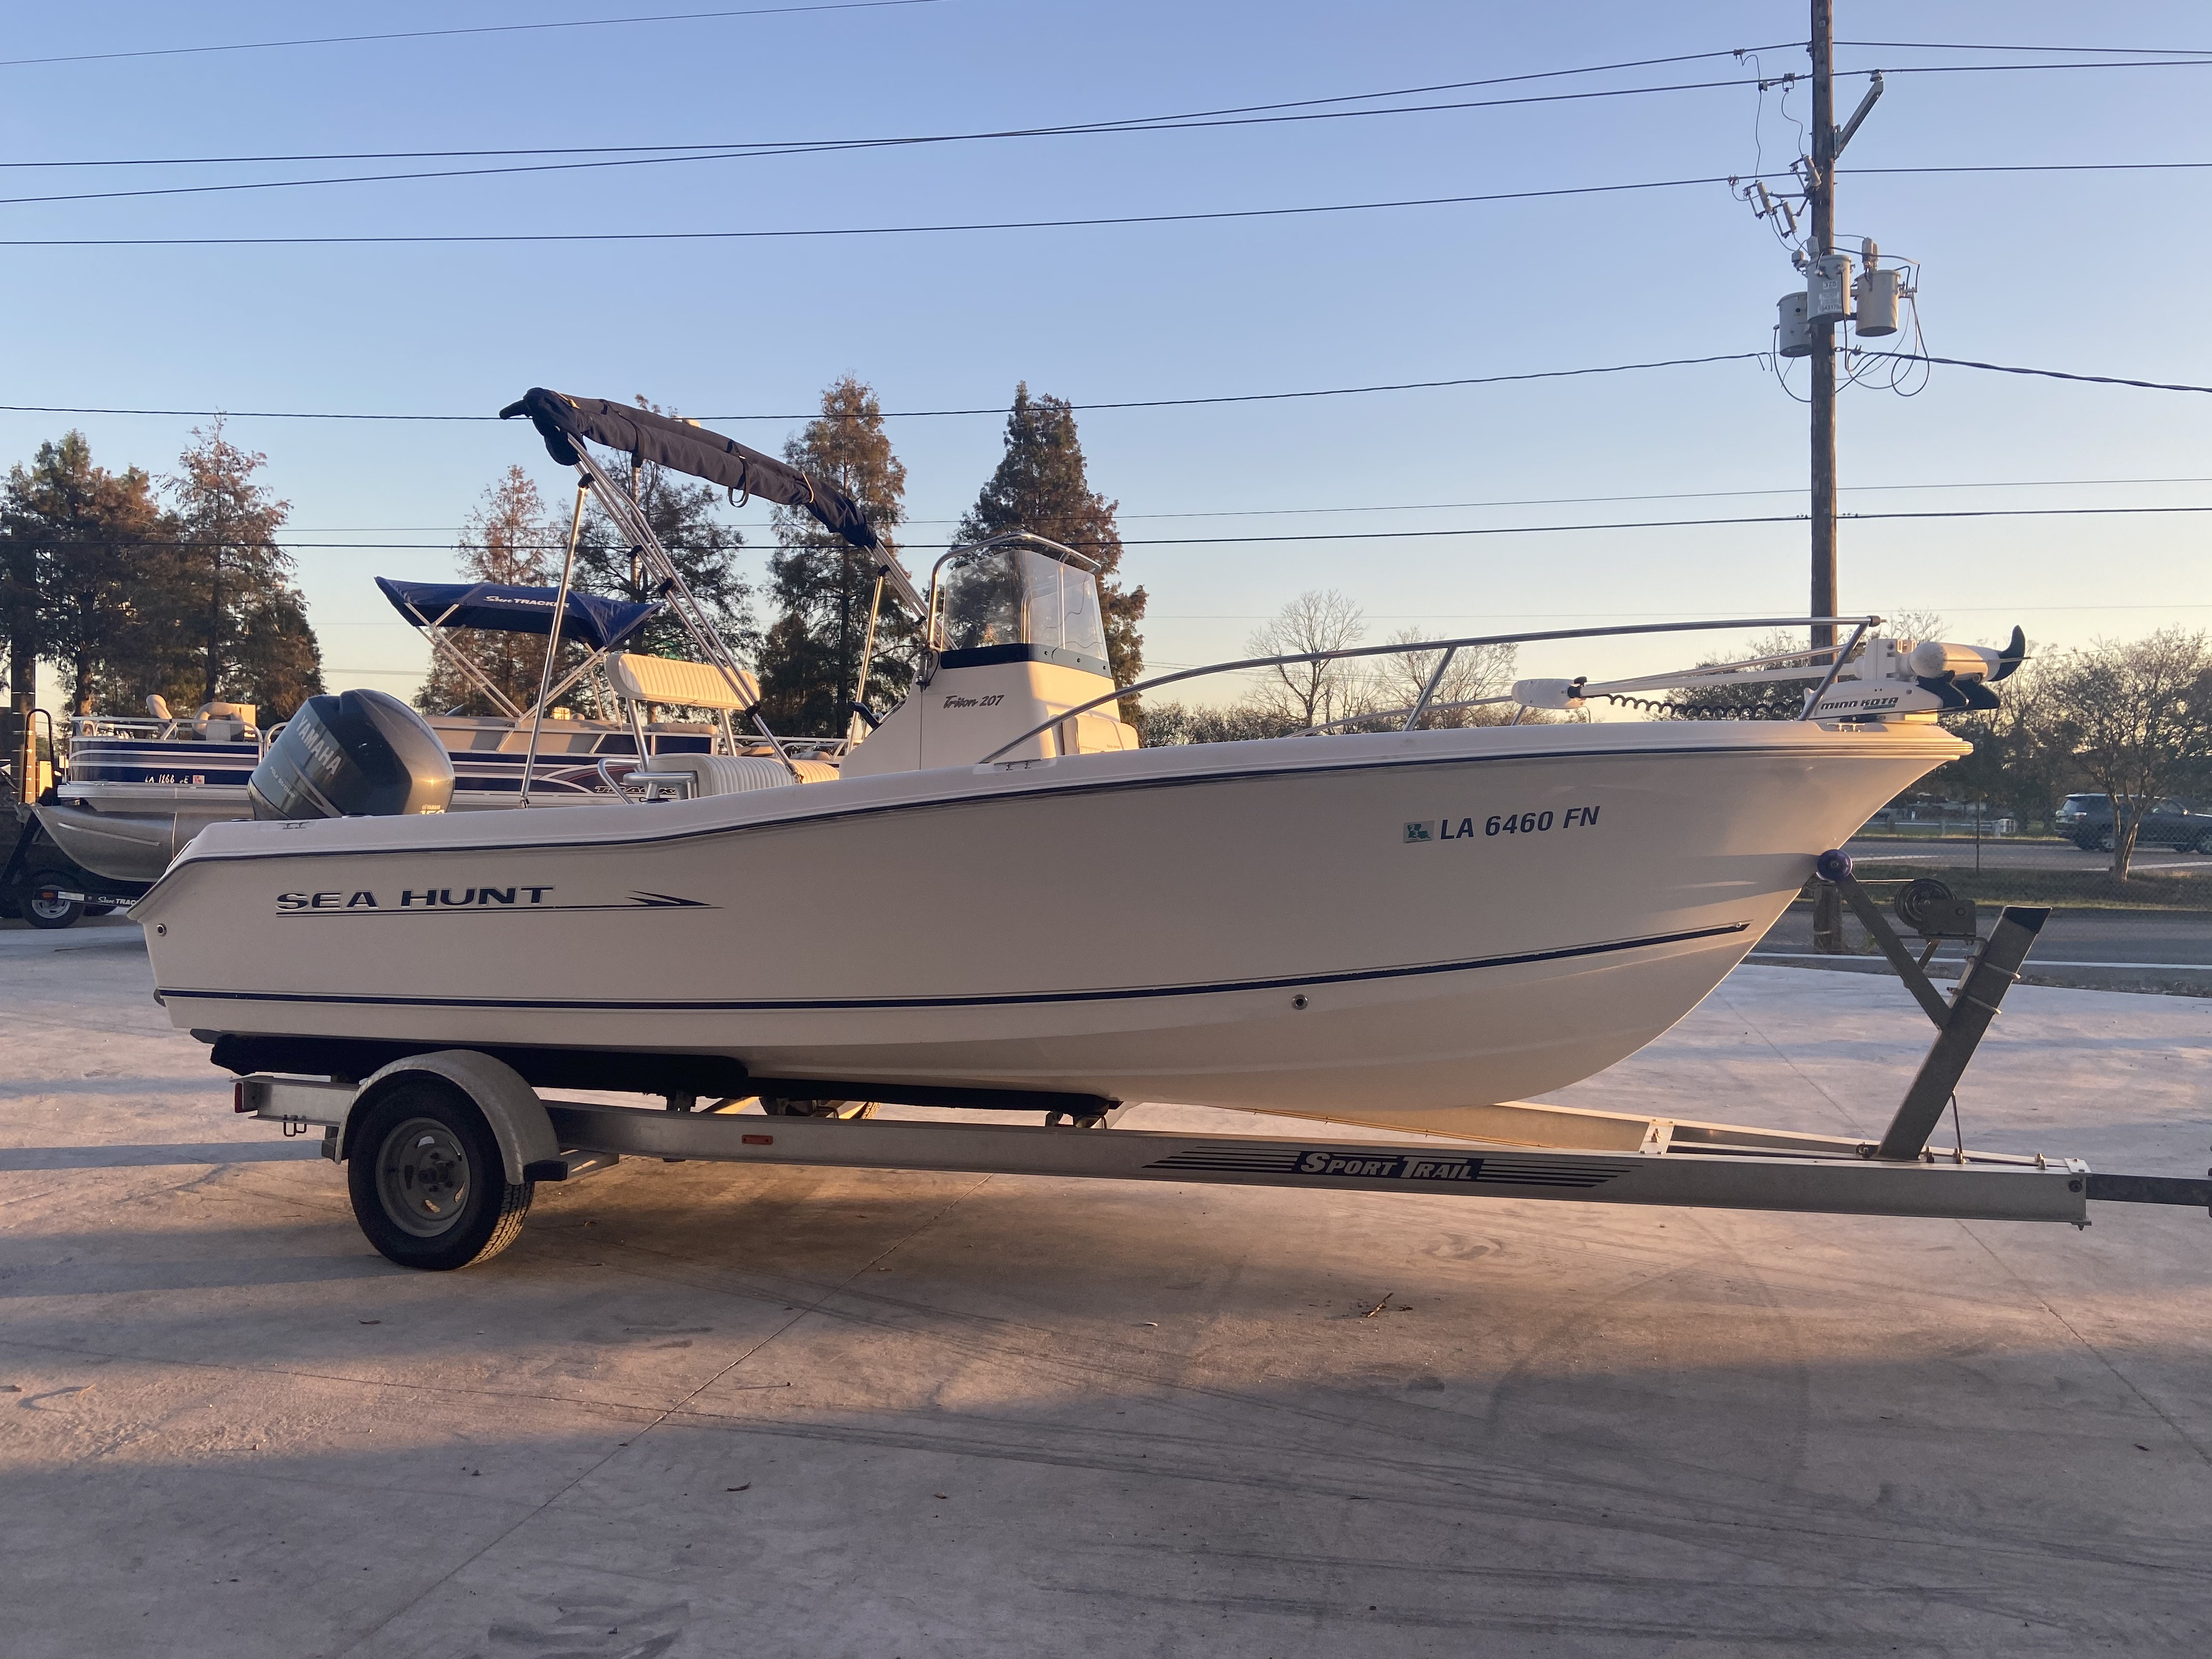 2007 Sea Hunt boat for sale, model of the boat is 207 Triton & Image # 26 of 28